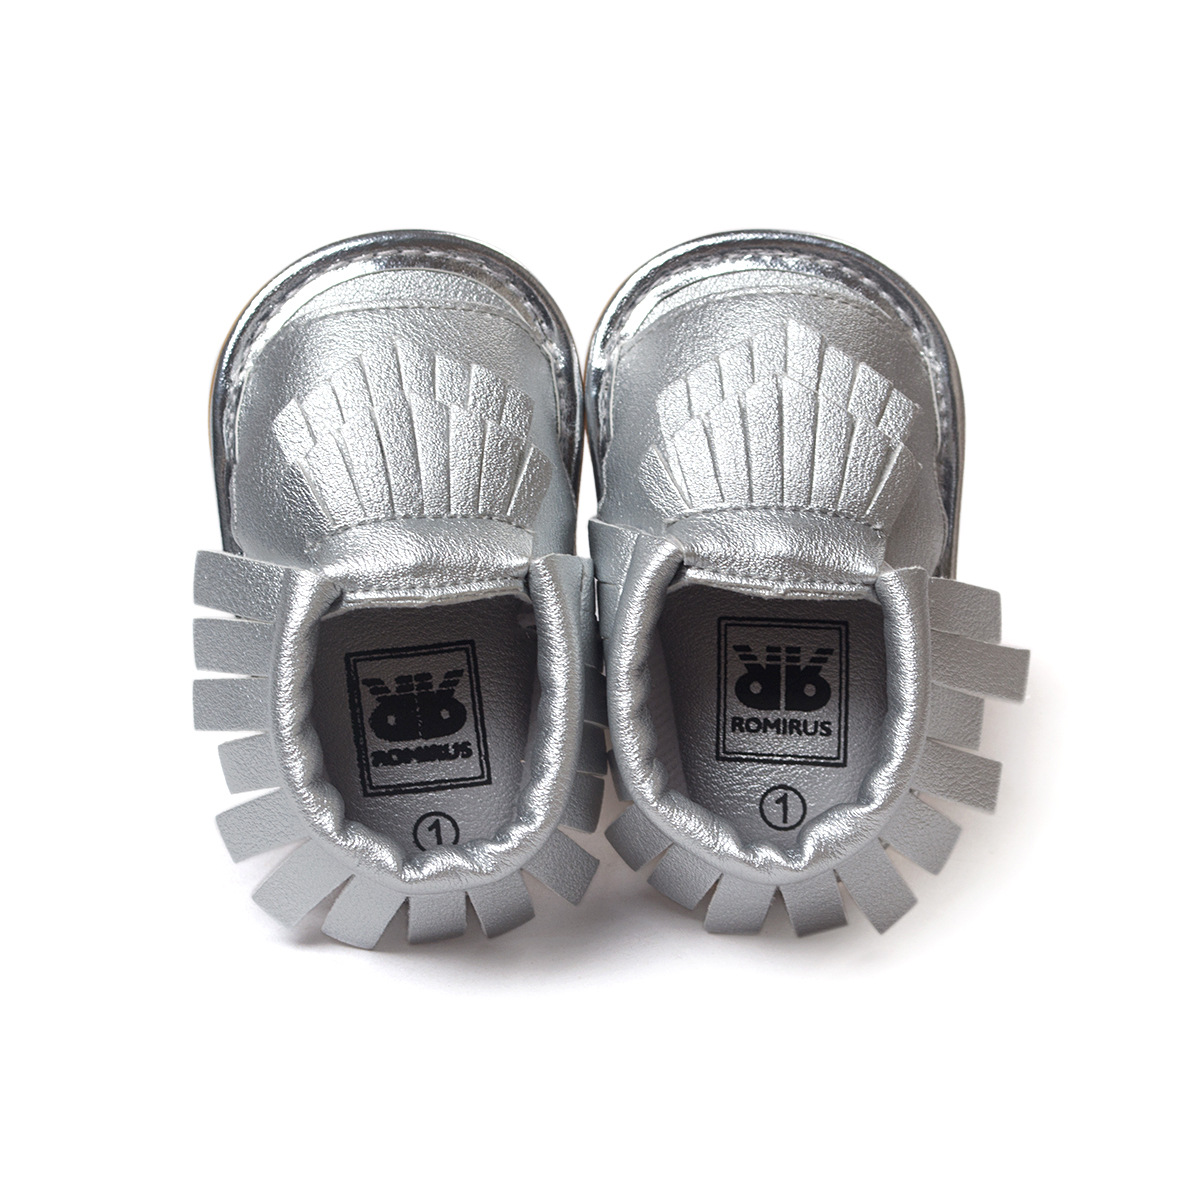 Black newborn sandals - 2017 New Baby Moccasins Fashion Fringe Baby First Walkers Toddler Shoes For Newborn Boy Girl Baby Fashion Fringe Toddler Shoes Summer Sandals